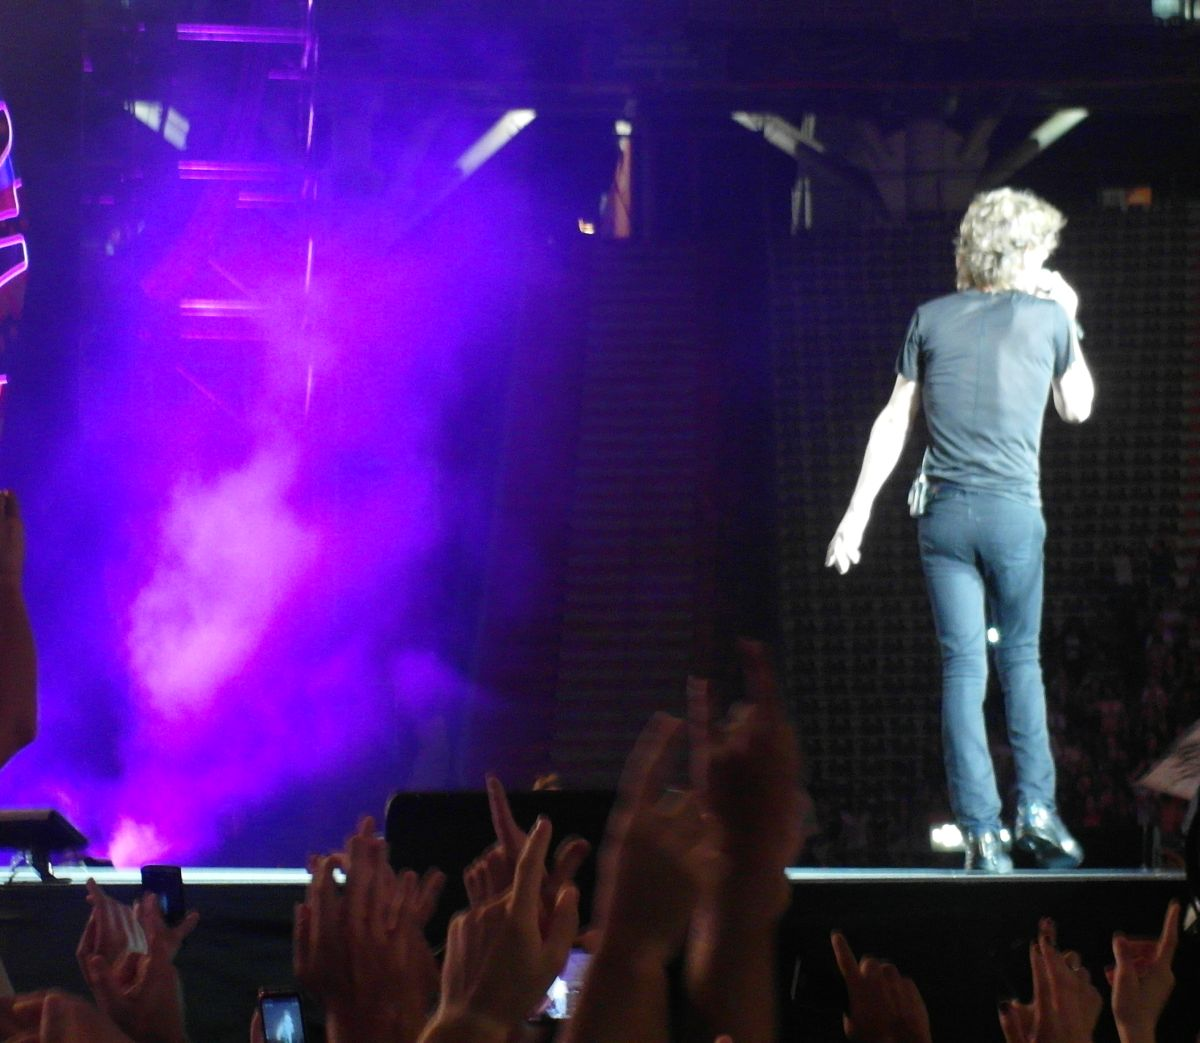 20160207_buenos_aires_rolling_stones_bv_05